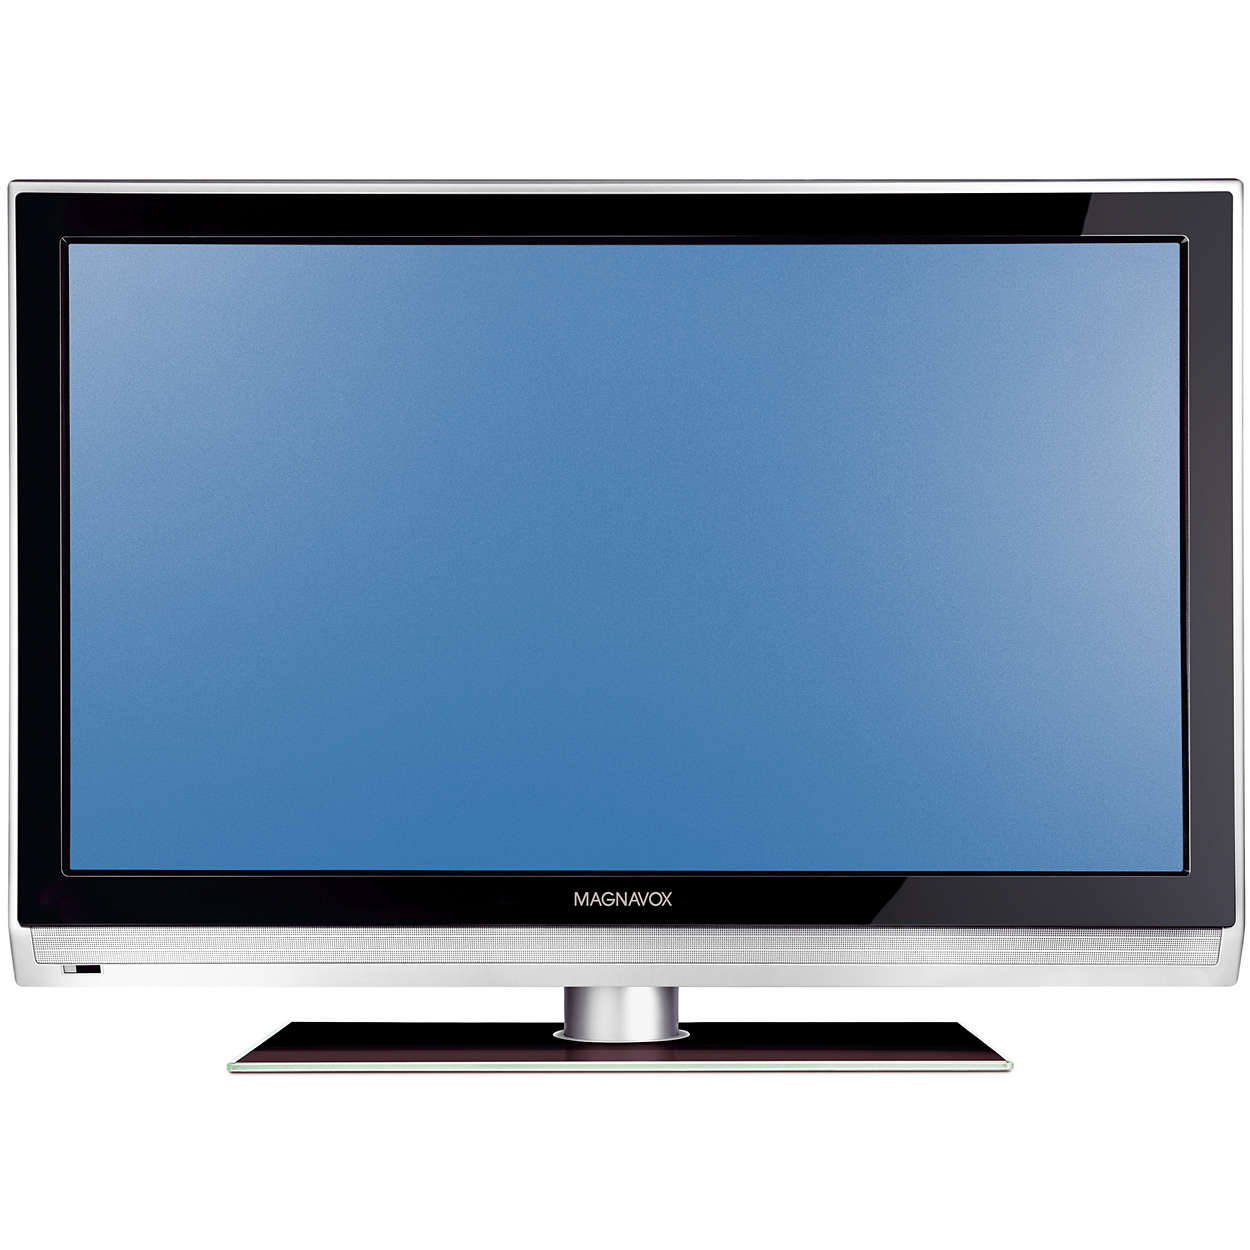 "52"" Digital LCD HDTV with True 1080p"